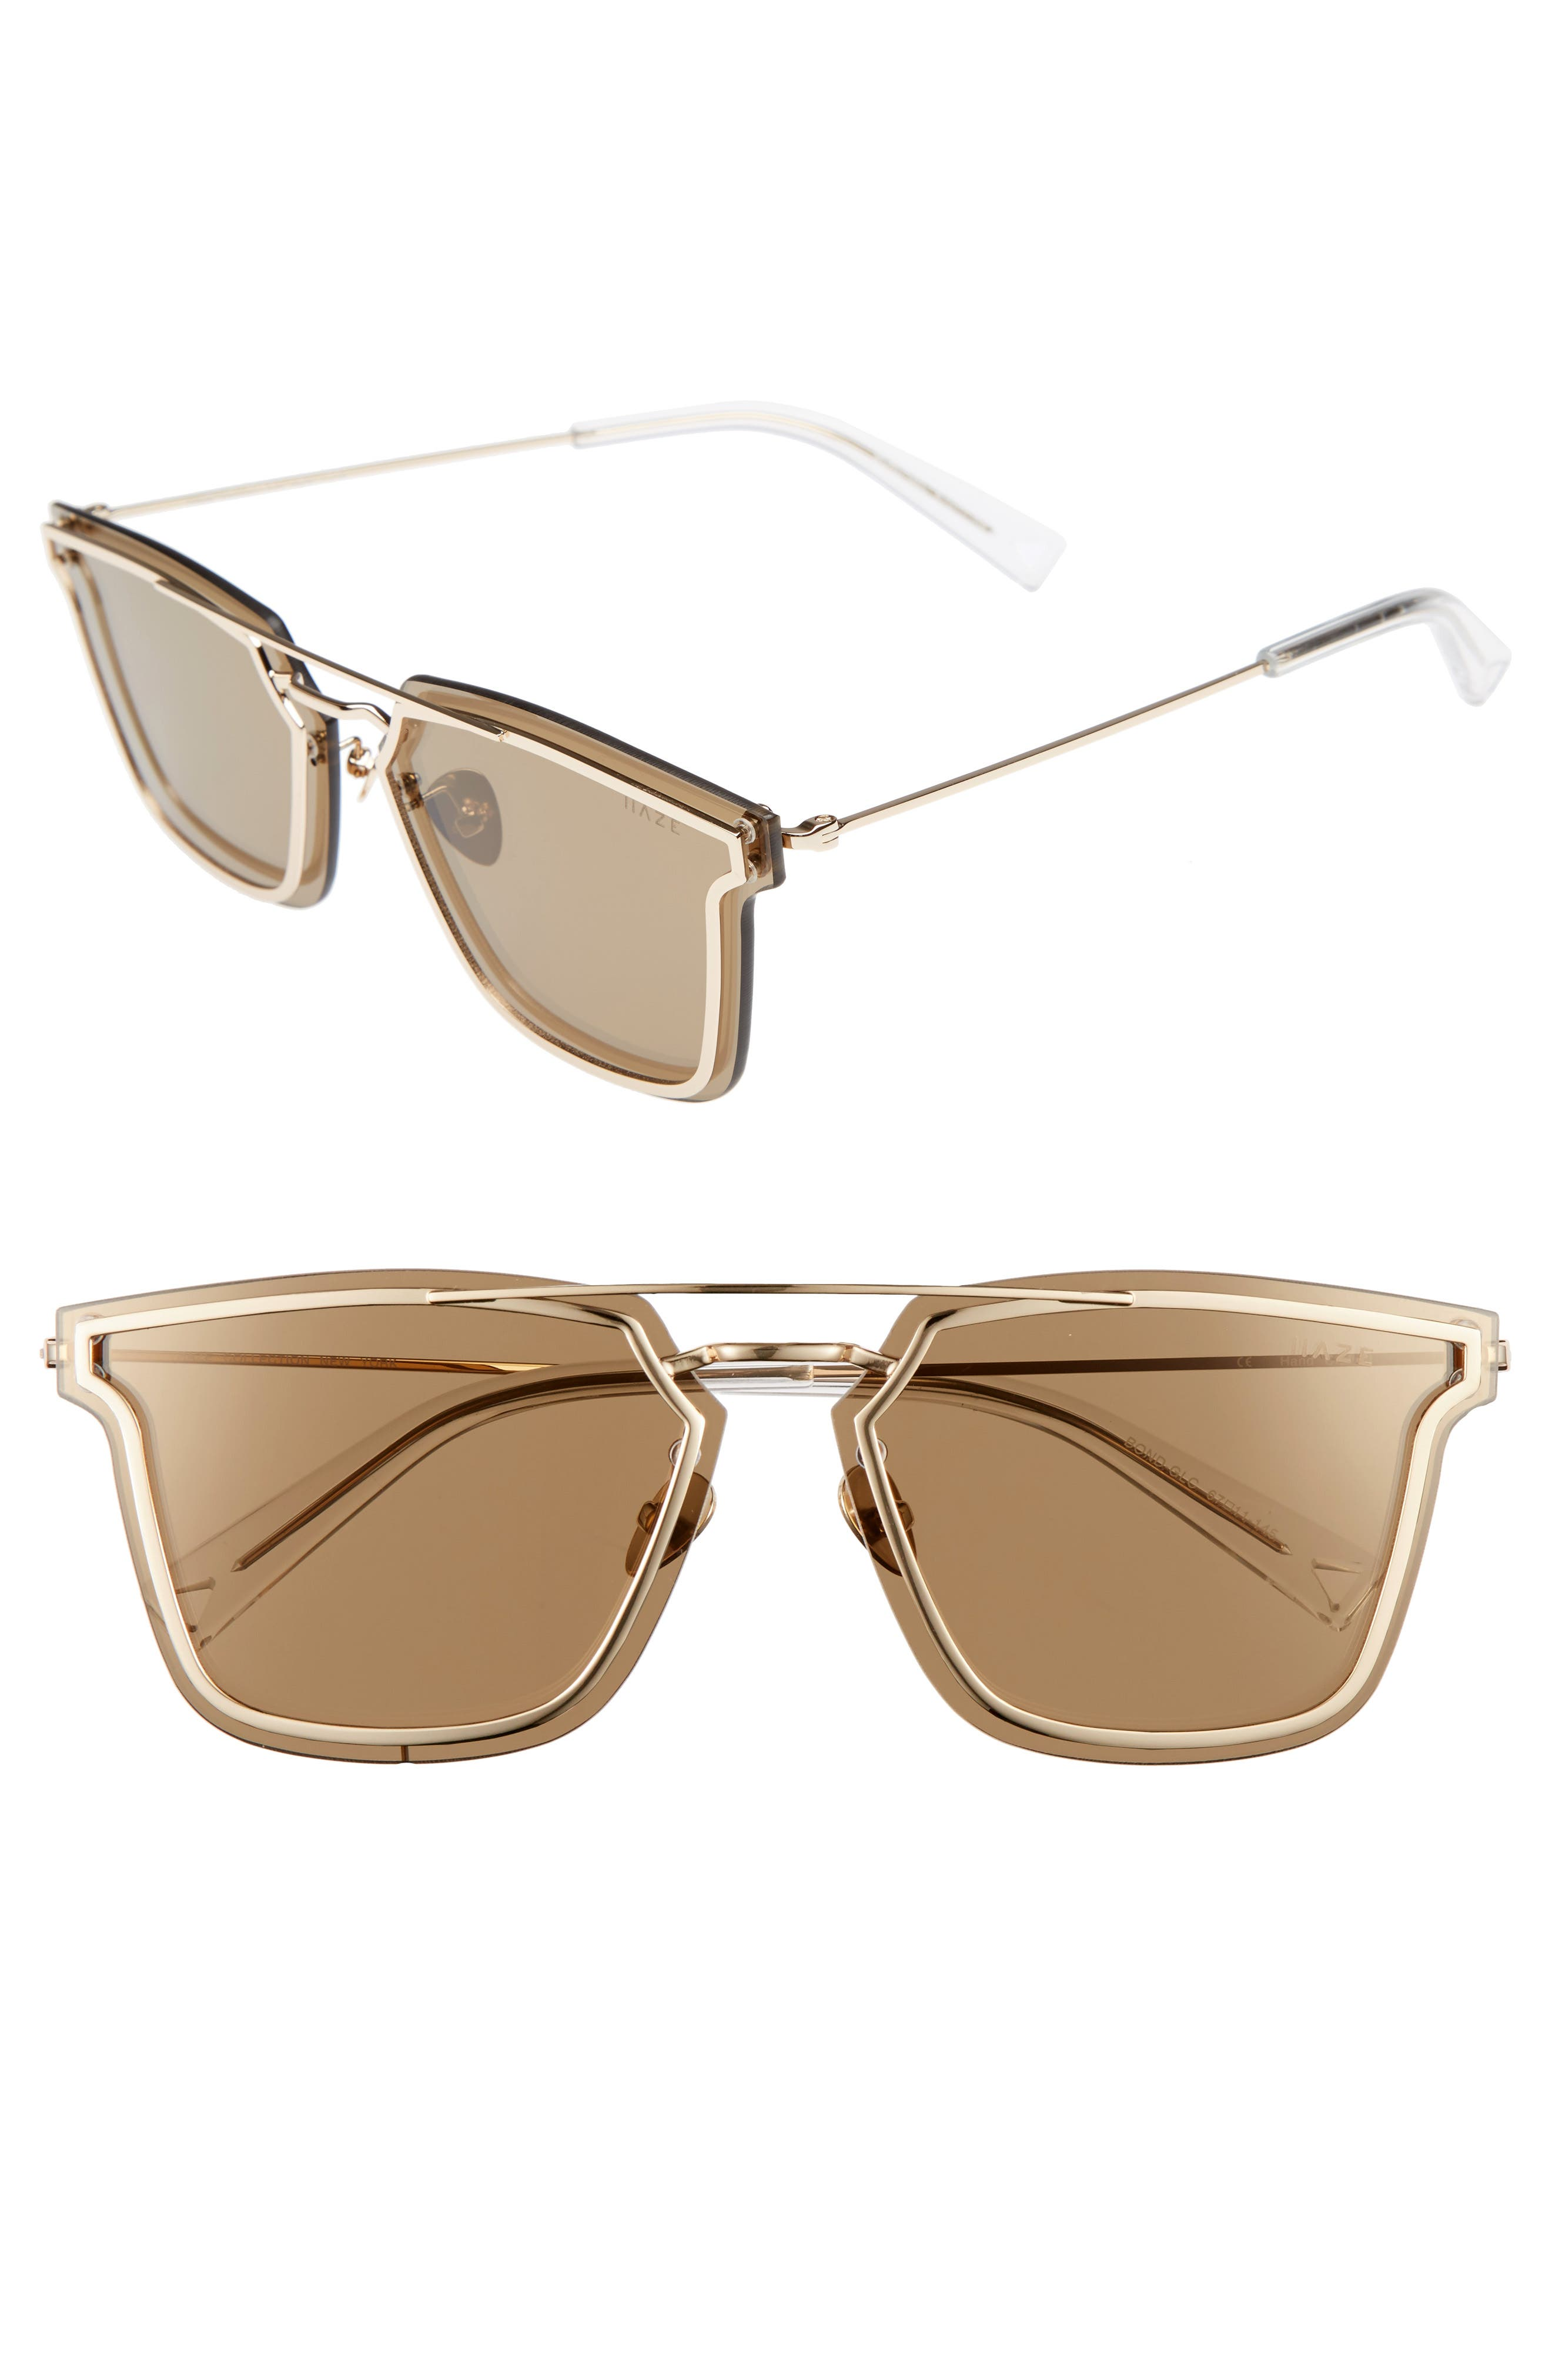 Bond 67mm Oversize Mirrored Sunglasses,                         Main,                         color, Golden